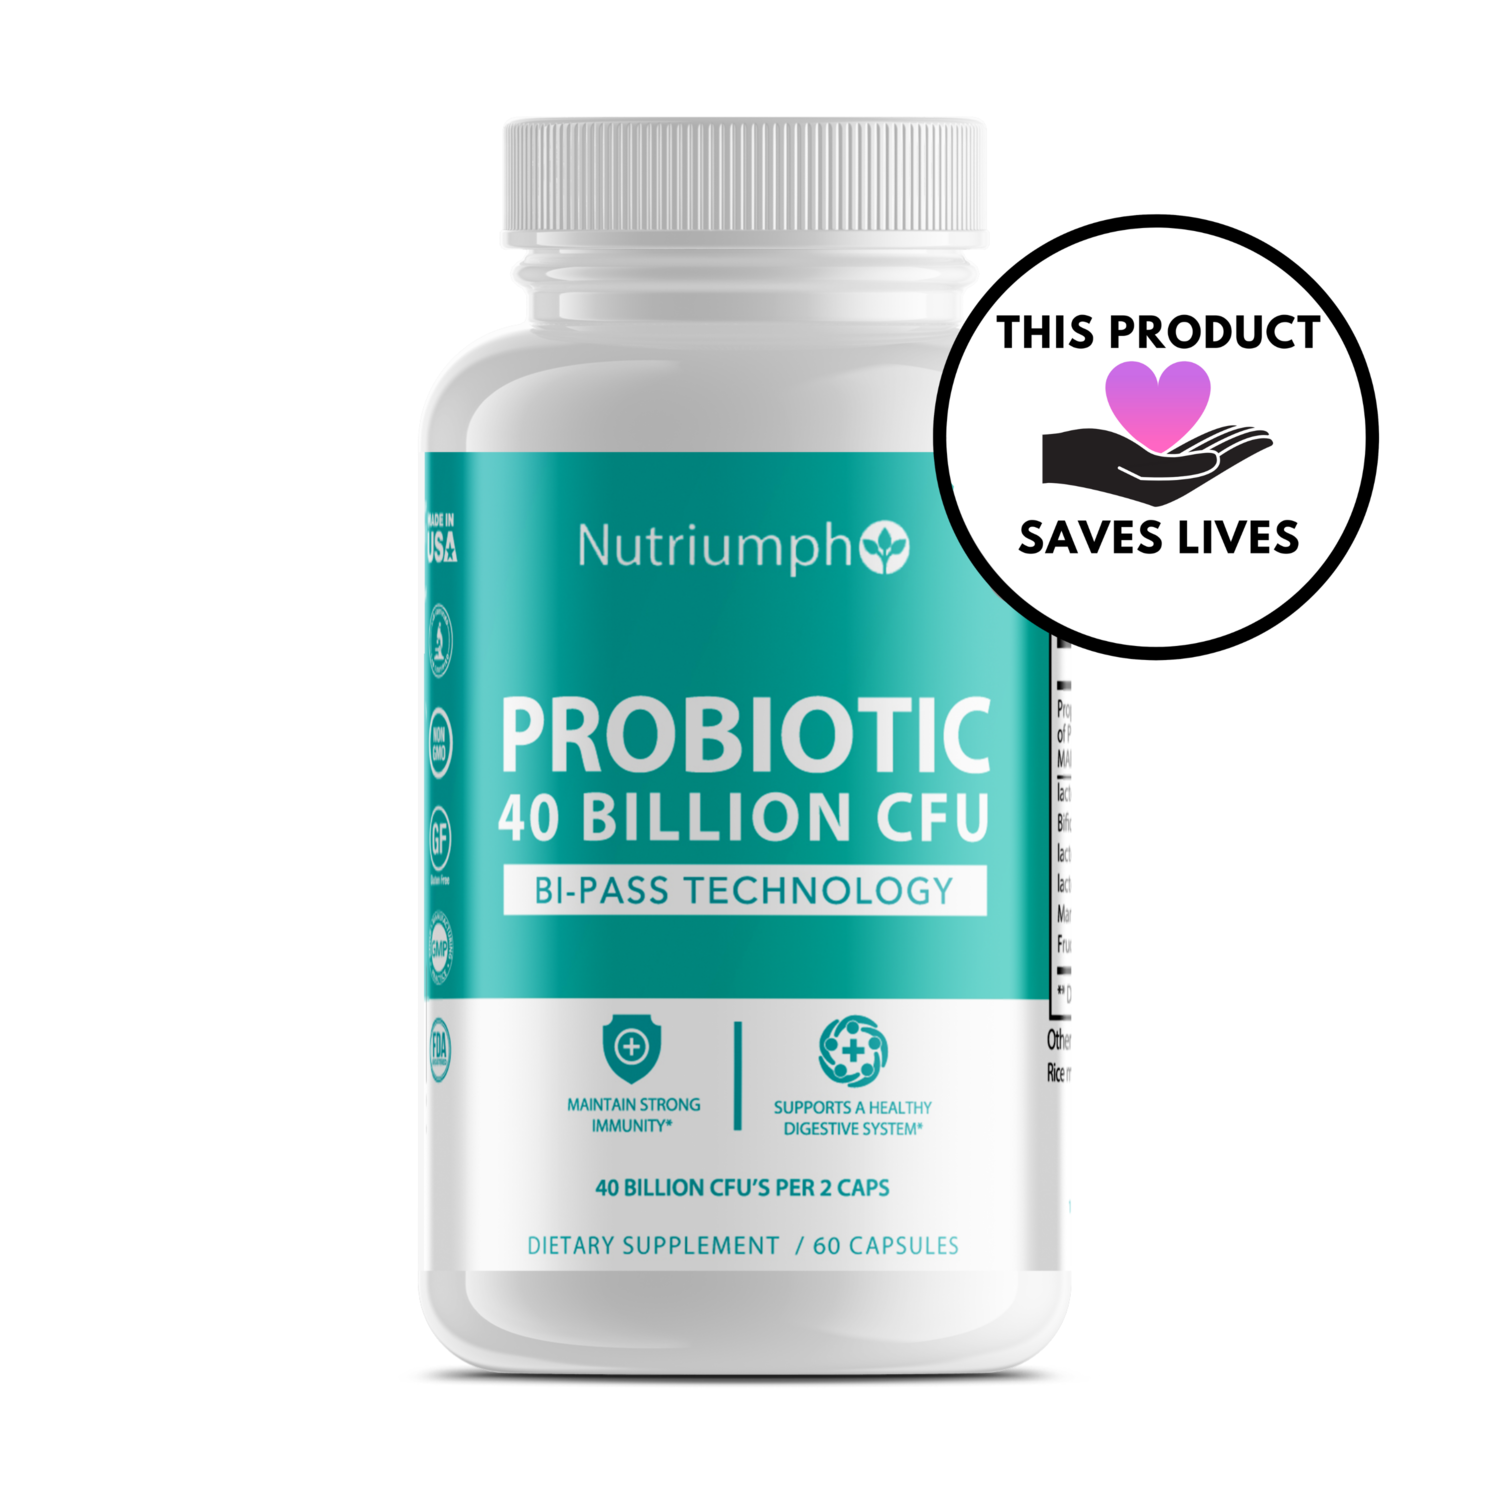 PROBIOTIC 40 BILLION CFU - Digestive Aid & Gut Health